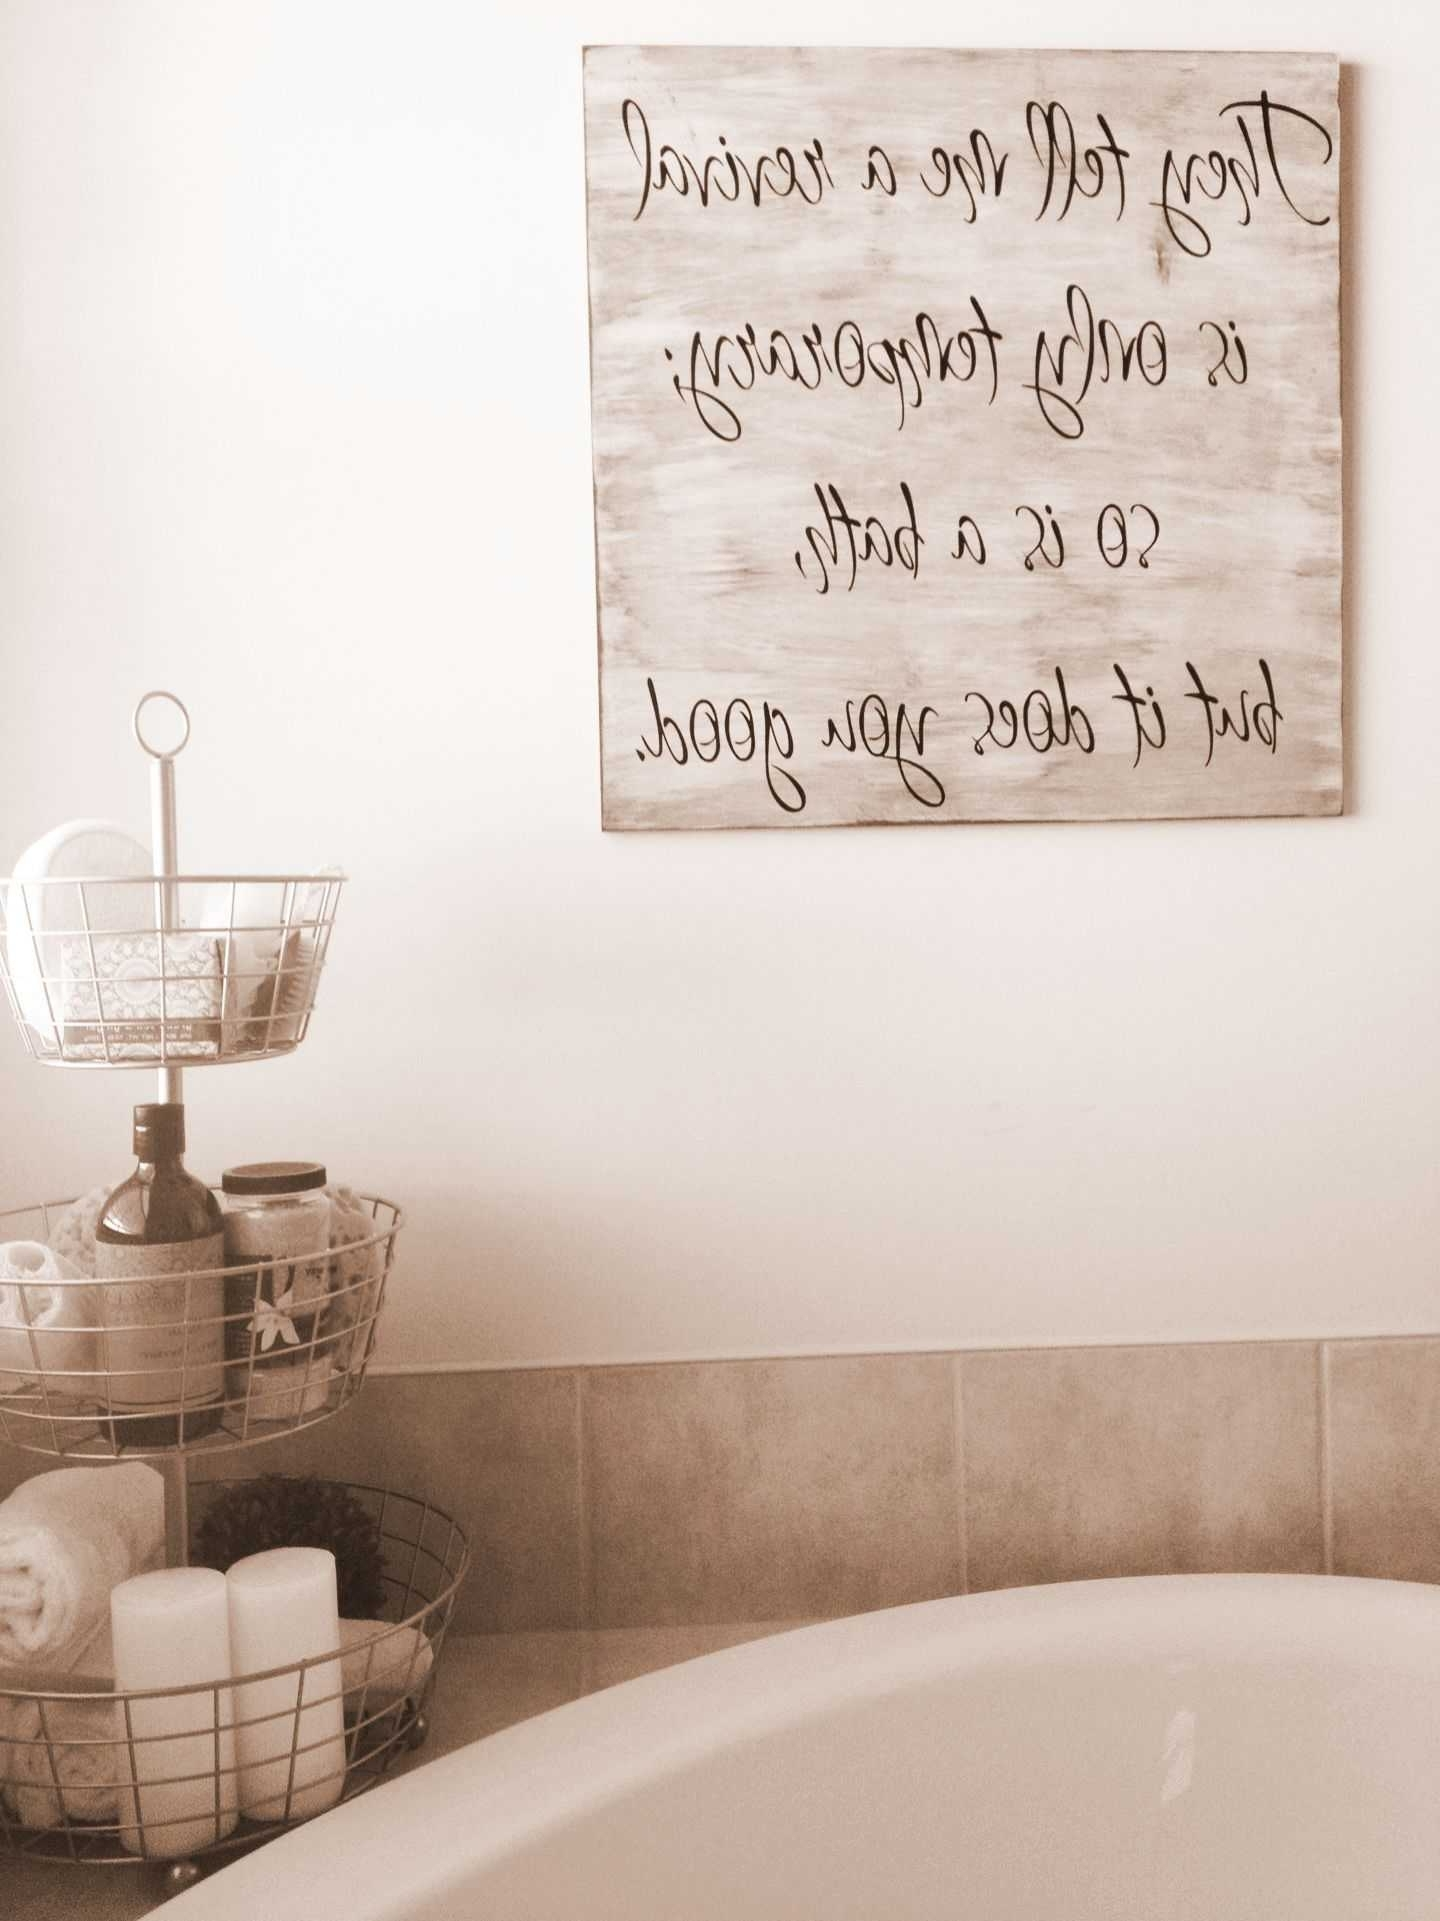 Wall Decorations For Bathroom Pictures Pinalexis Kole On House For Current Wall Accents For Bathroom (View 14 of 15)